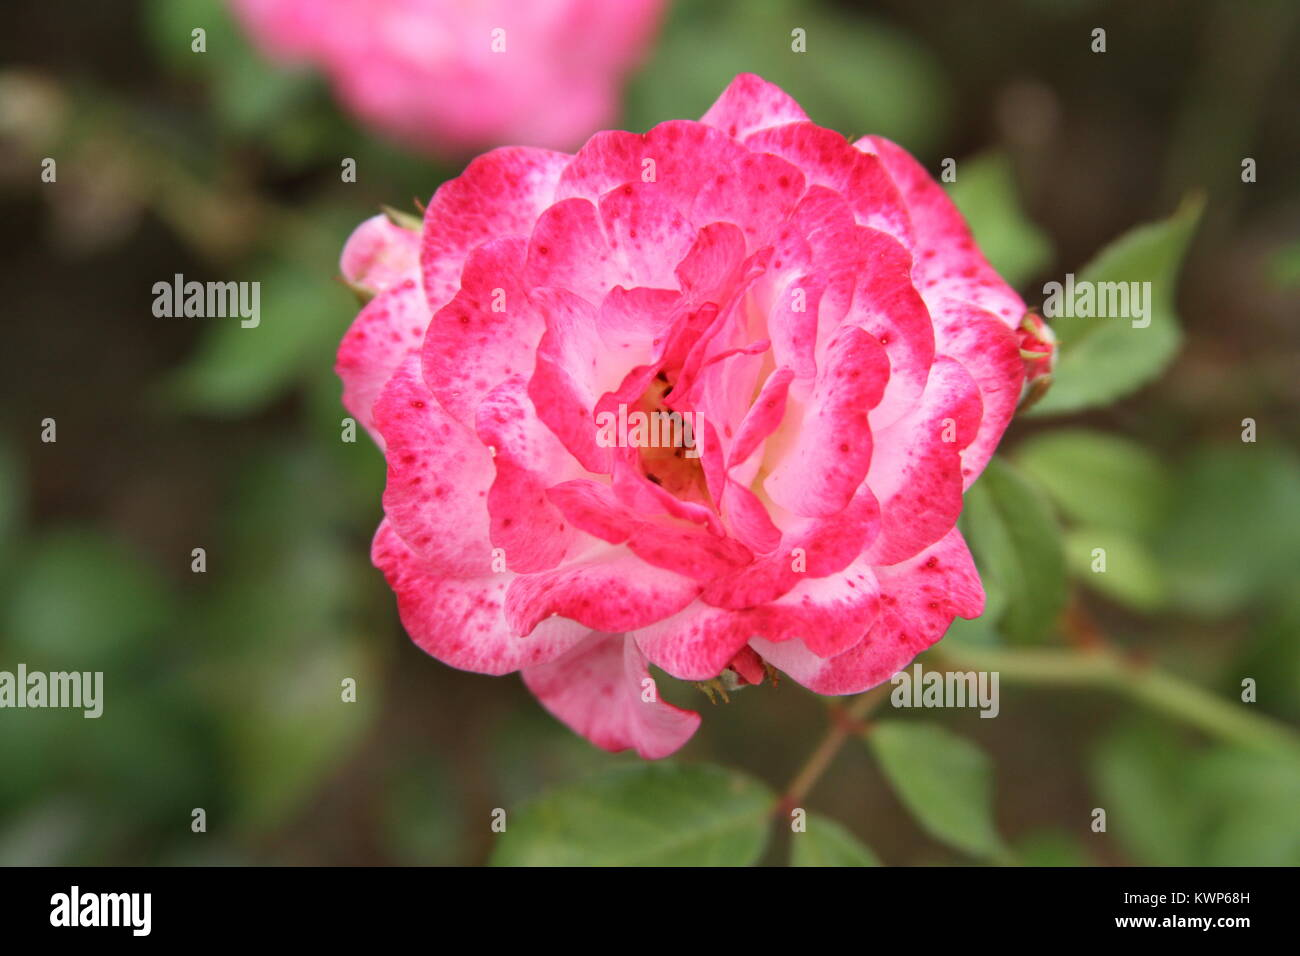 Pink Rose with two tones - Stock Image